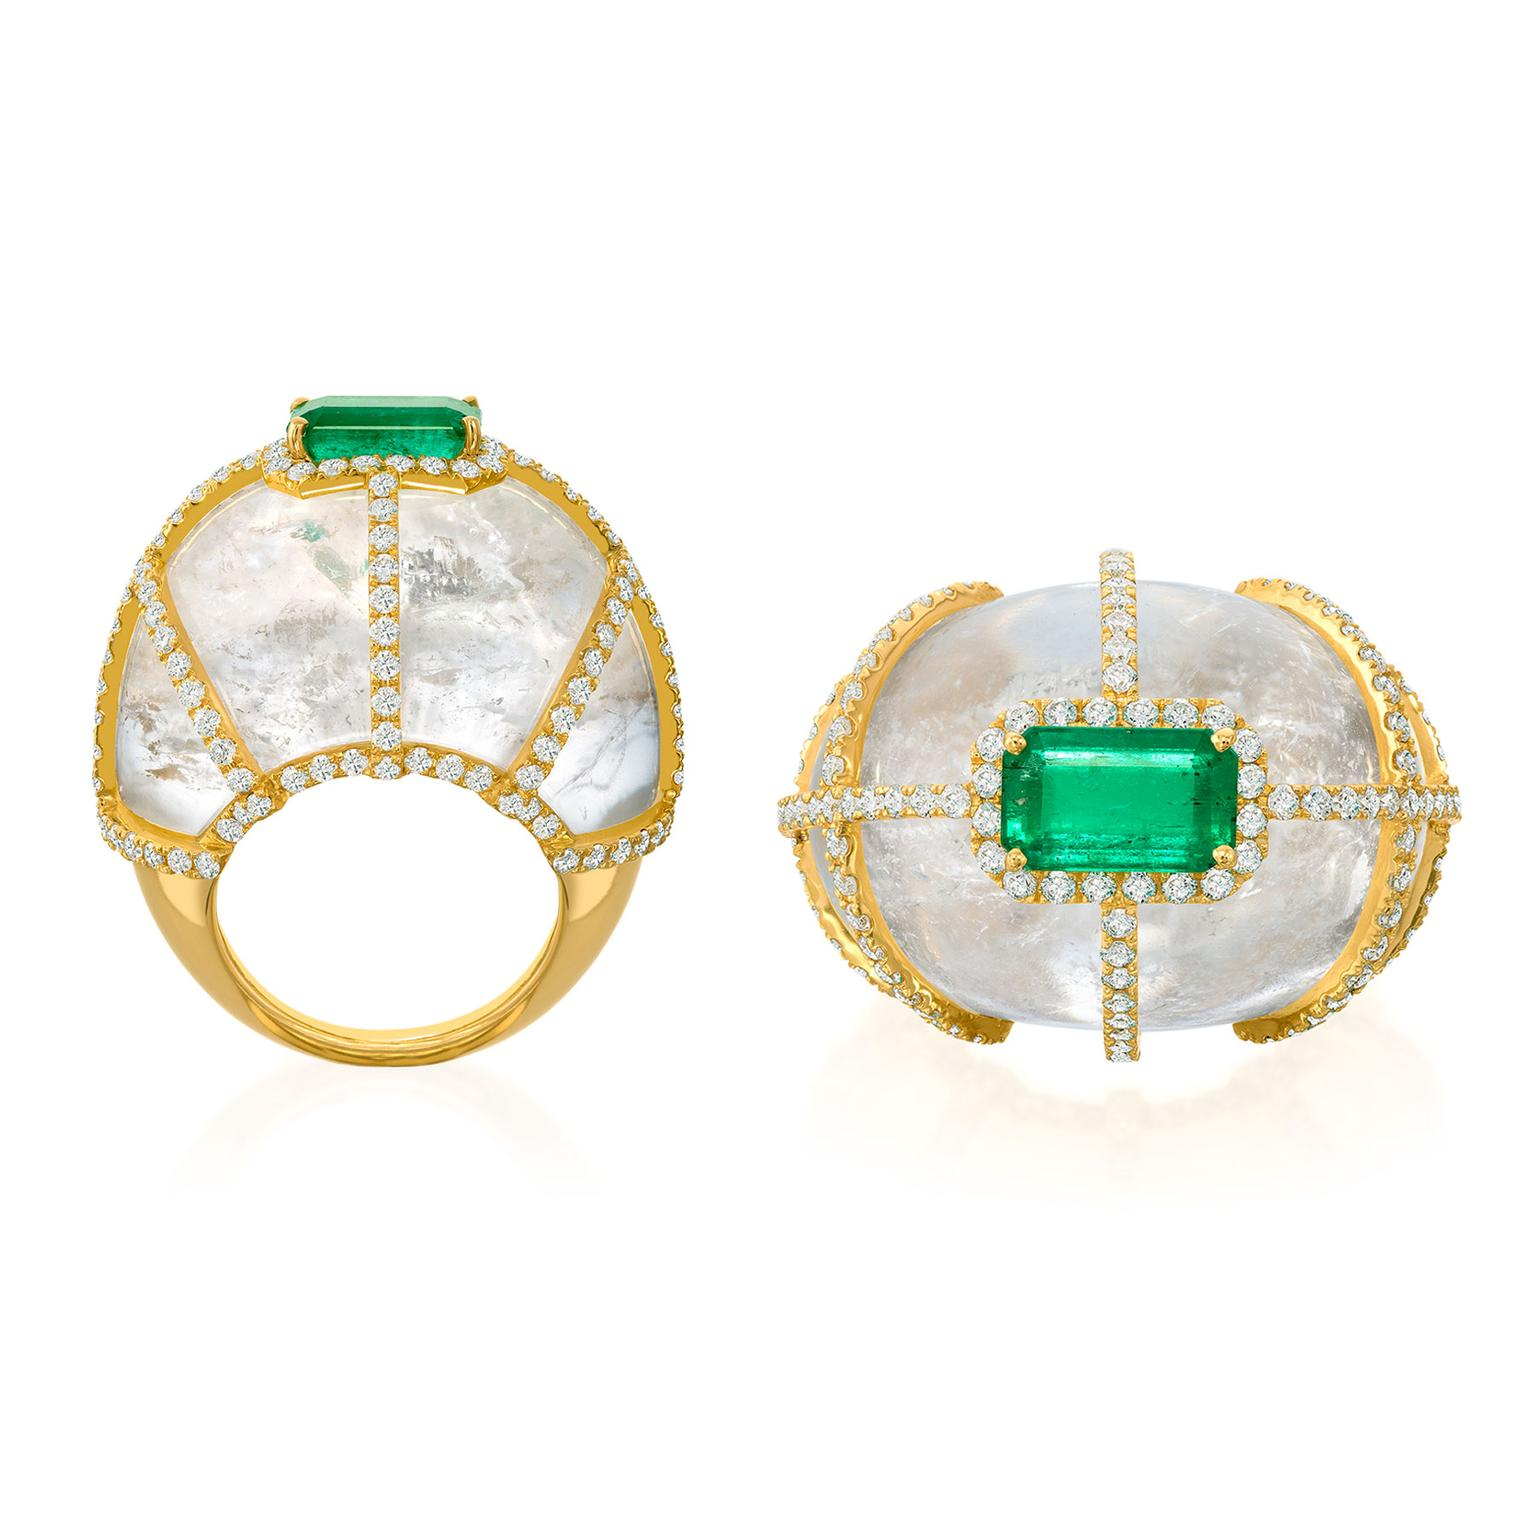 Amsterdam Sauer Illusion emerald ring with white quartz and diamonds